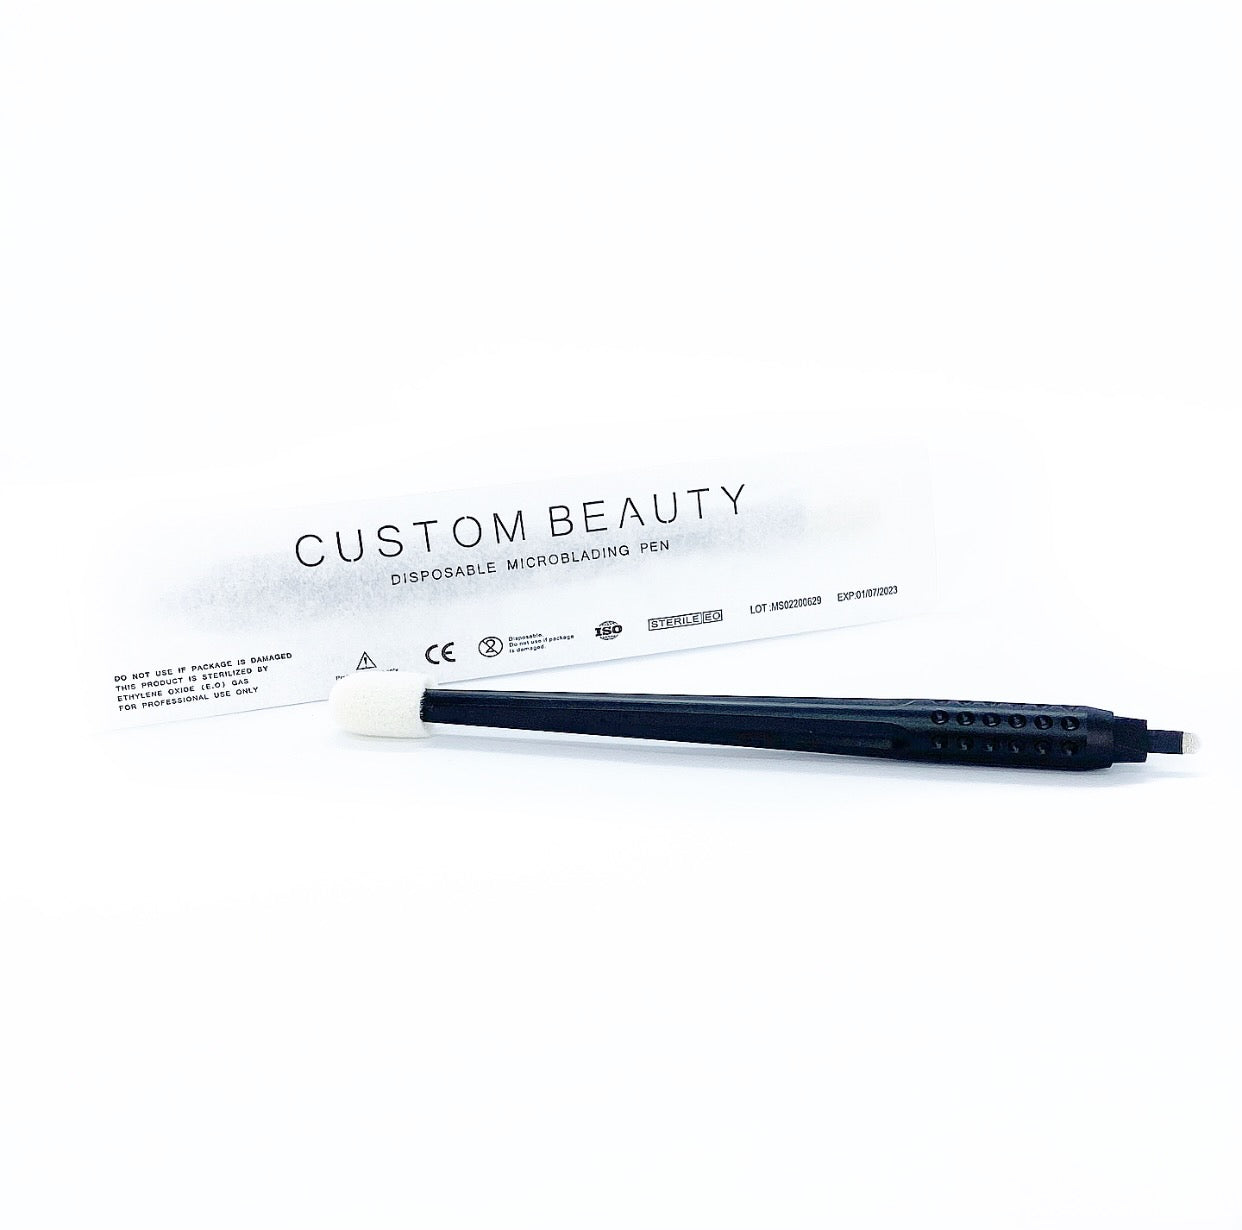 Disposable Microblading Pen by Custom Beauty